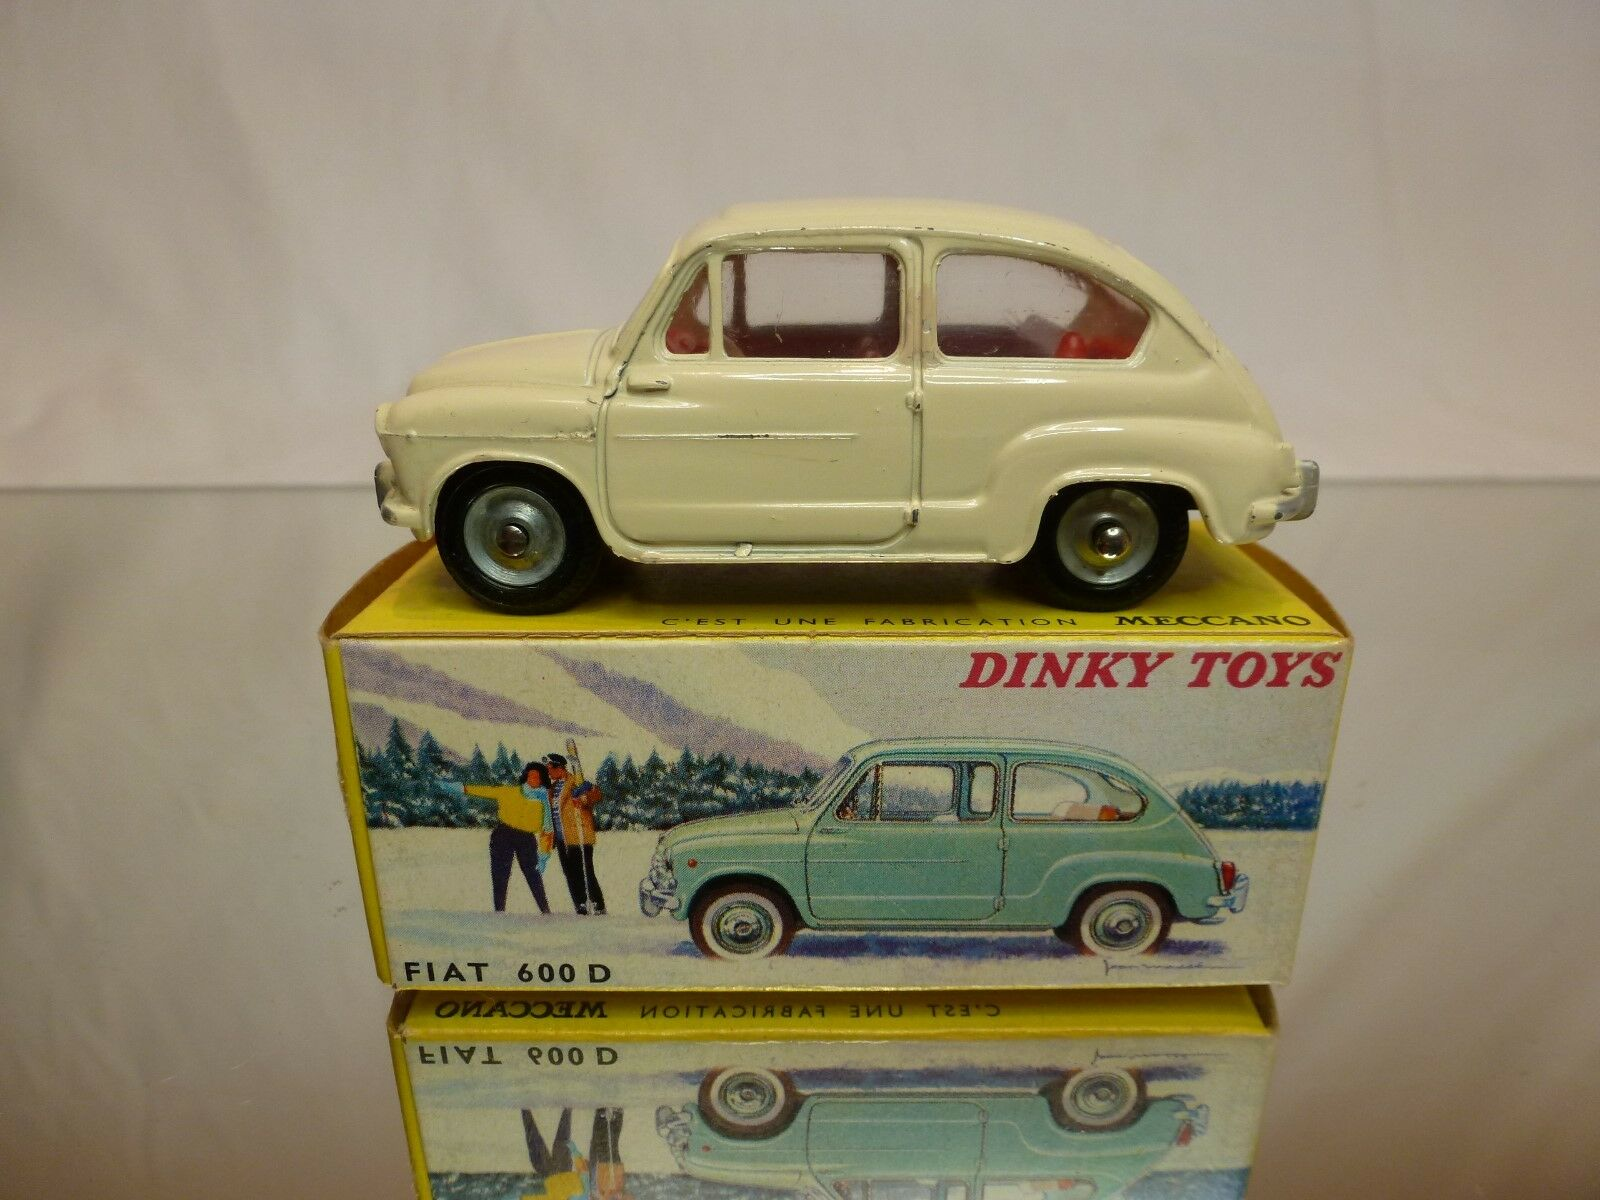 DINKY TOYS 1 43 - FIAT 600 D NO= 520  -  EXCELLENT CONDITION IN BOX.